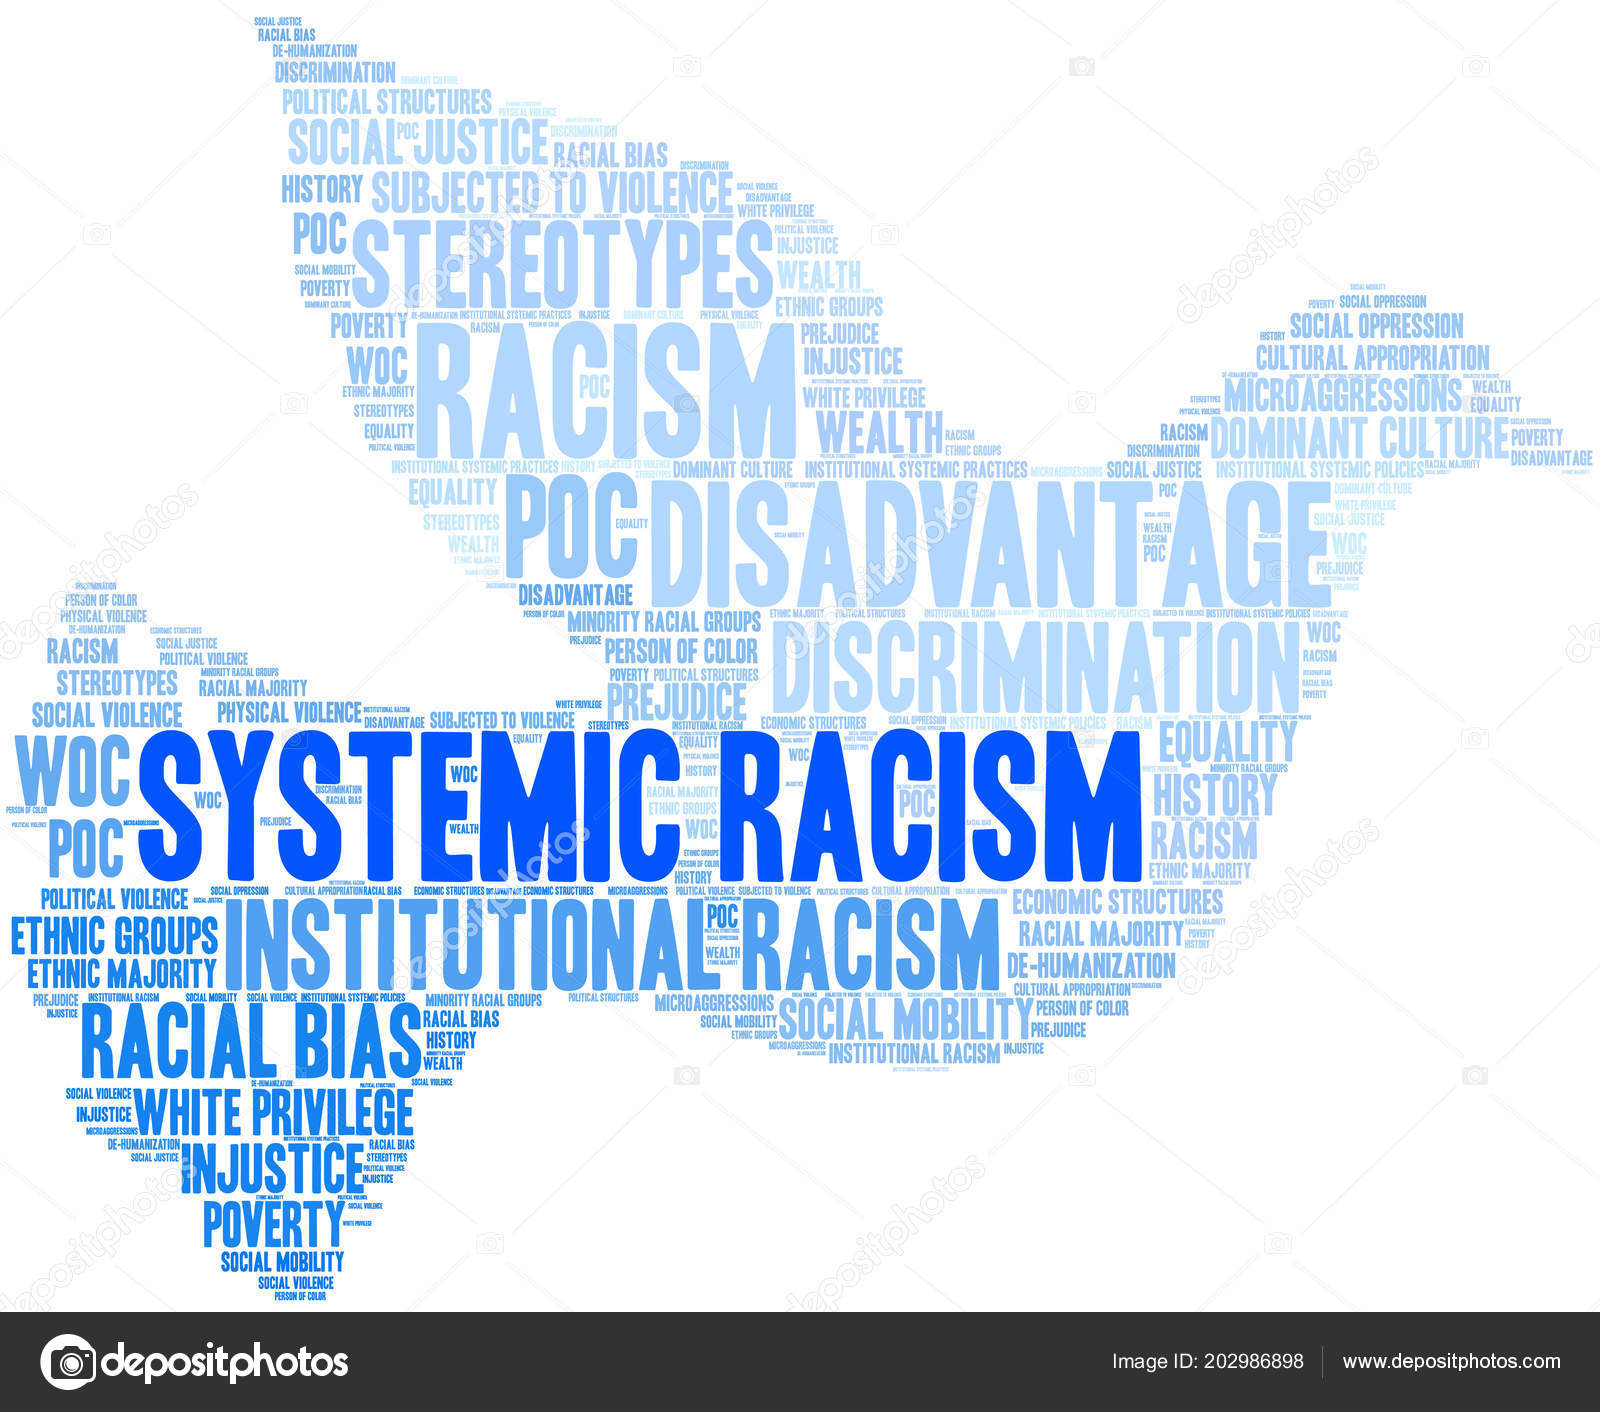 racism and racial social justice The center for third world organizing is a racial-justice organization dedicated to building a social-justice movement led by people of color as a training and resource center, it promotes and sustains direct-action organizing in communities of color in the united states.